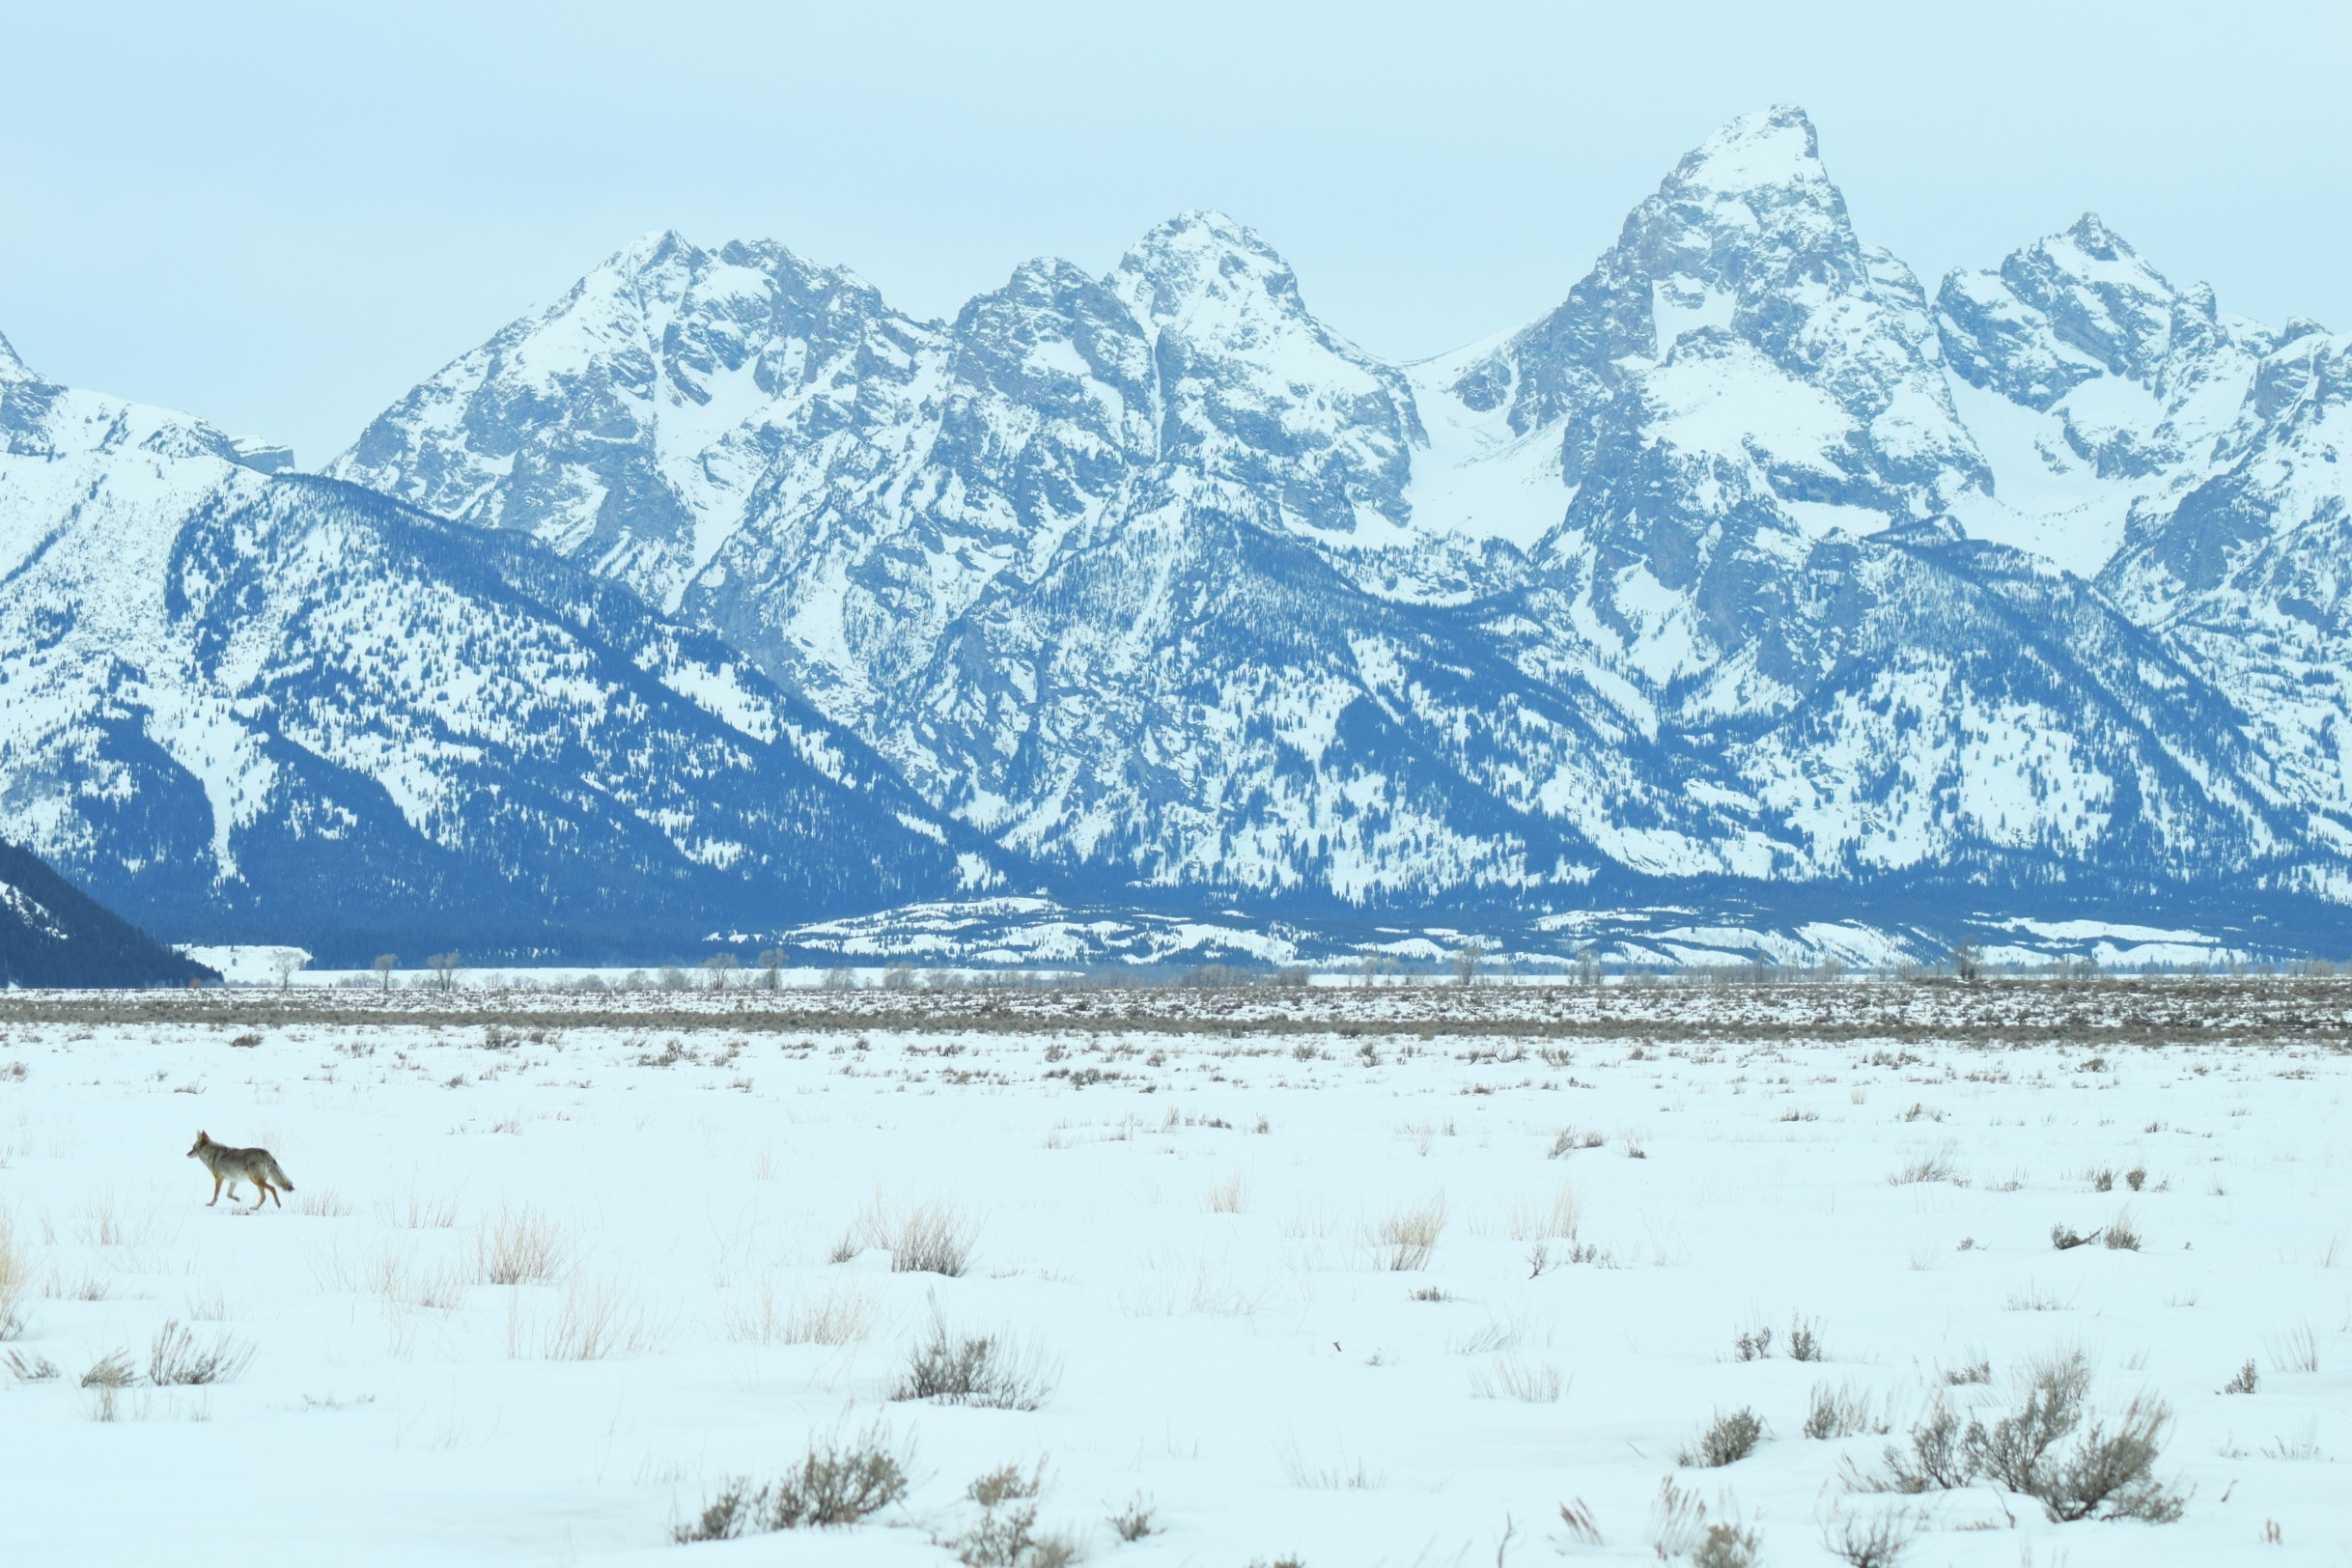 Coyote+in+front+of+the+Tetons+Wyoming+Guide+company.jpg